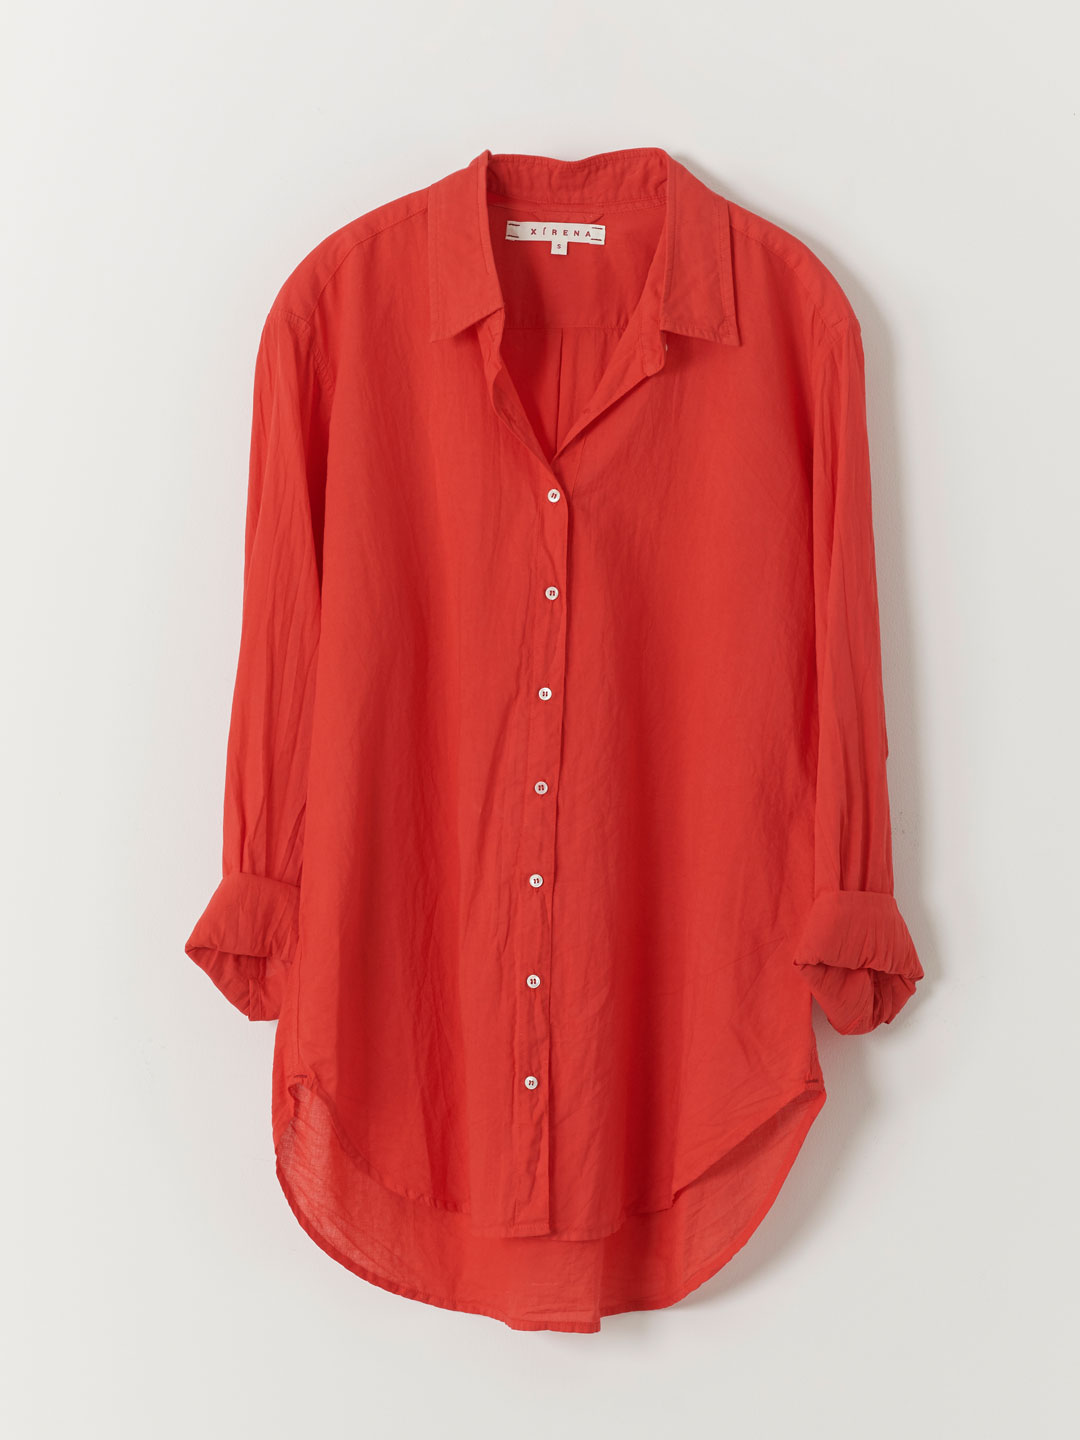 Beau Cotton Poplin Shirt - Red